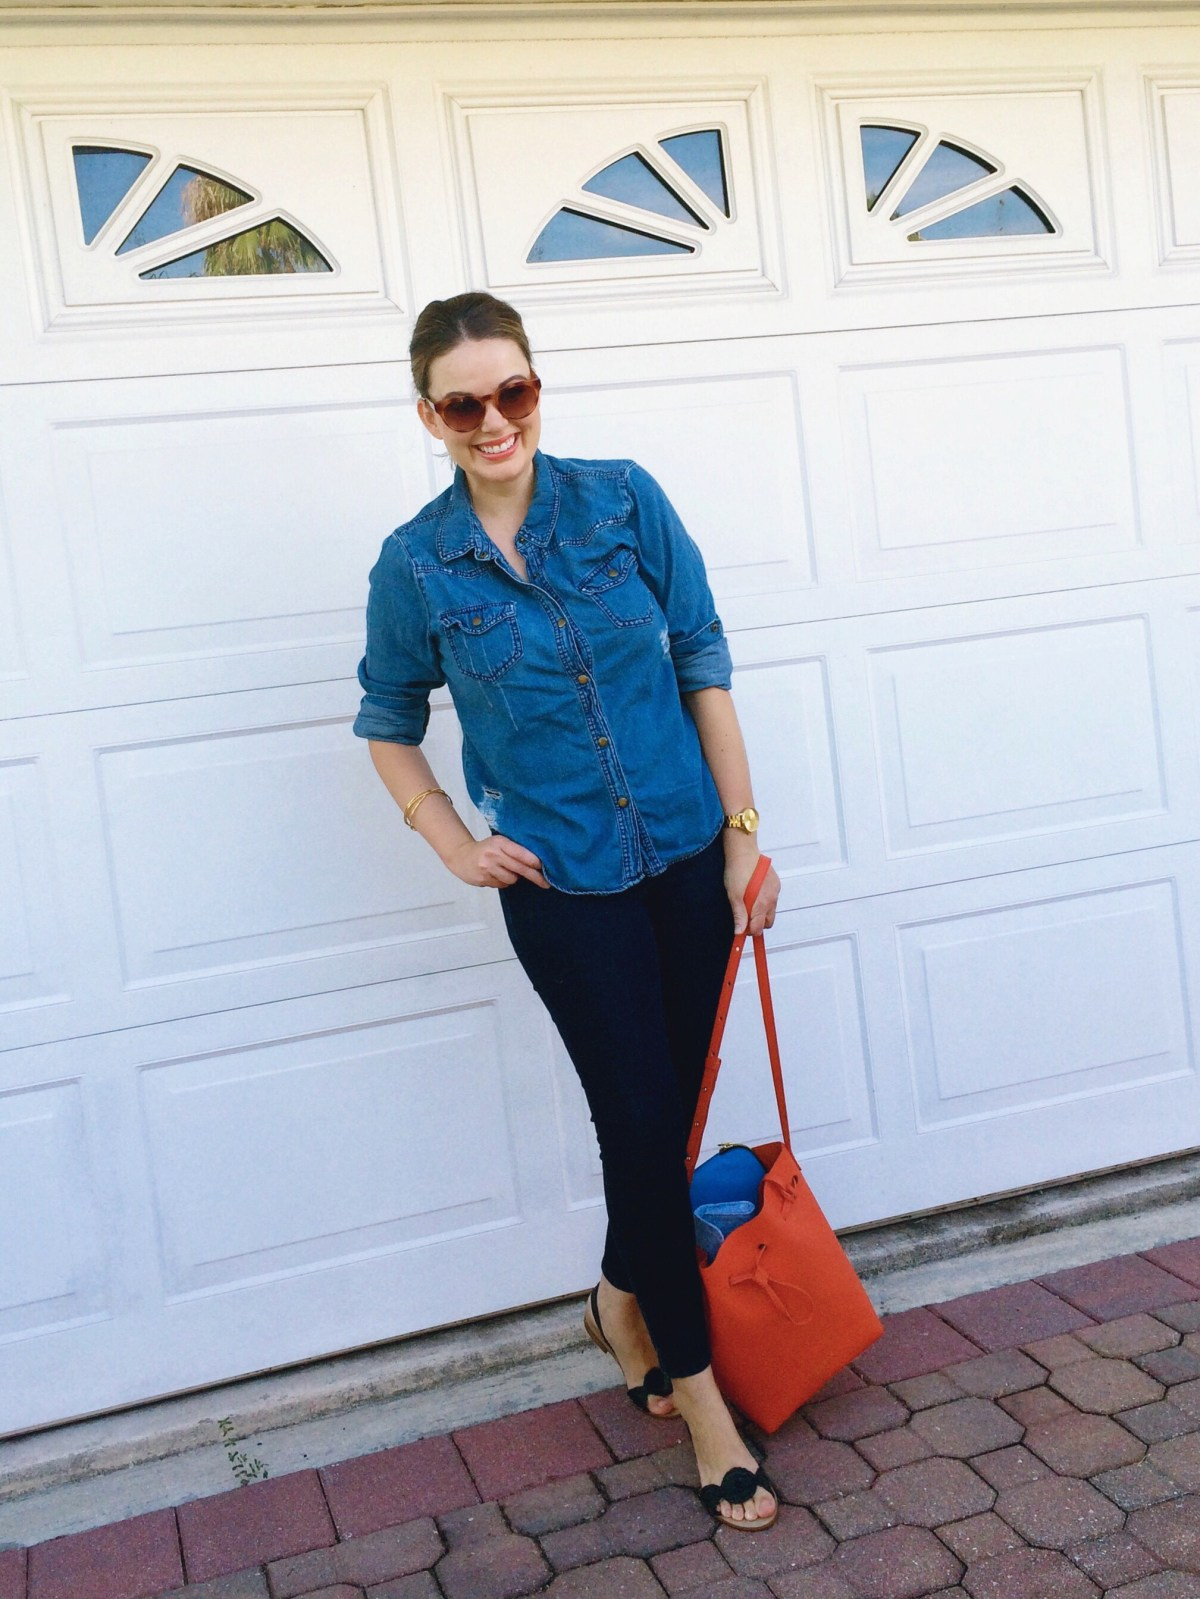 OOTD, Casual Style, Denim Shirt, Denim on Denim Outfit, Jack Rogers Liliana Sandals, Casual Outfit Ideas, How to Wear Denim on Denim